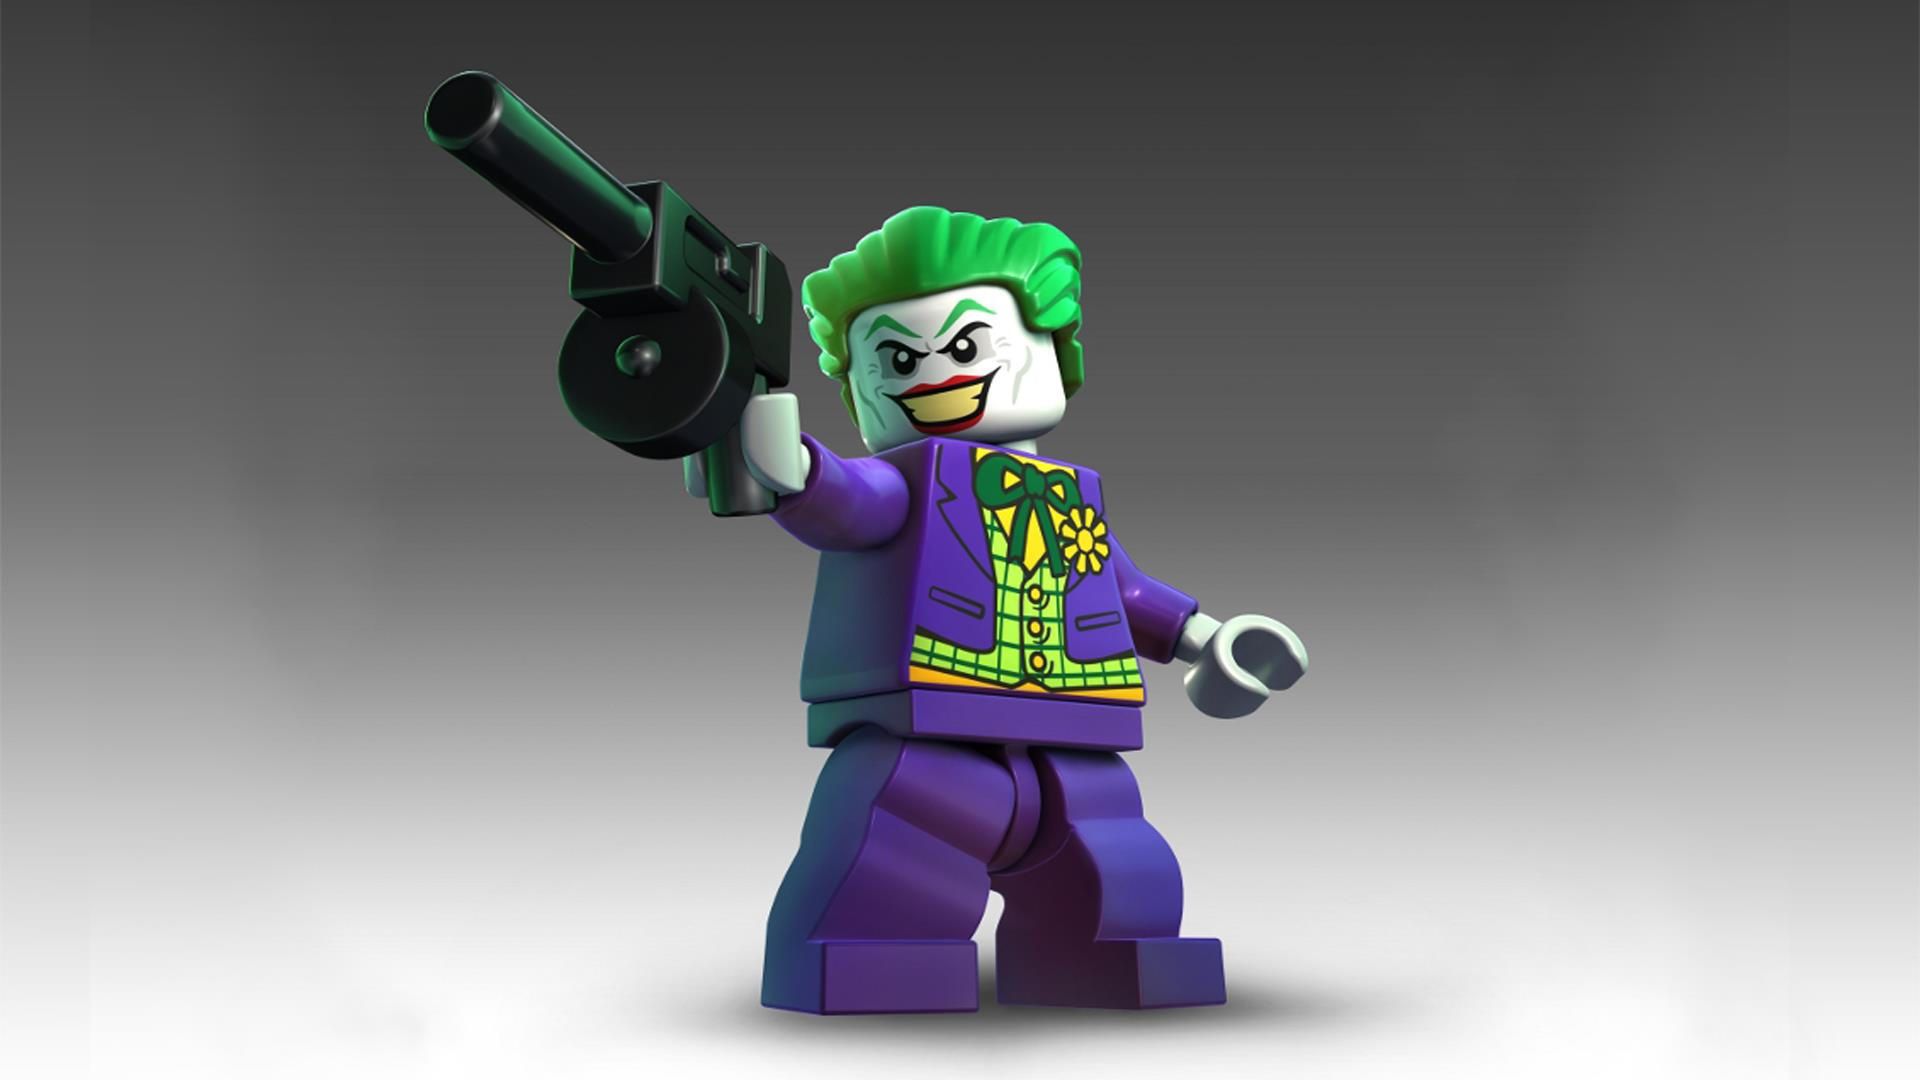 Batman Joker Lego HD Wallpaper Batman Joker Lego 1920x1080